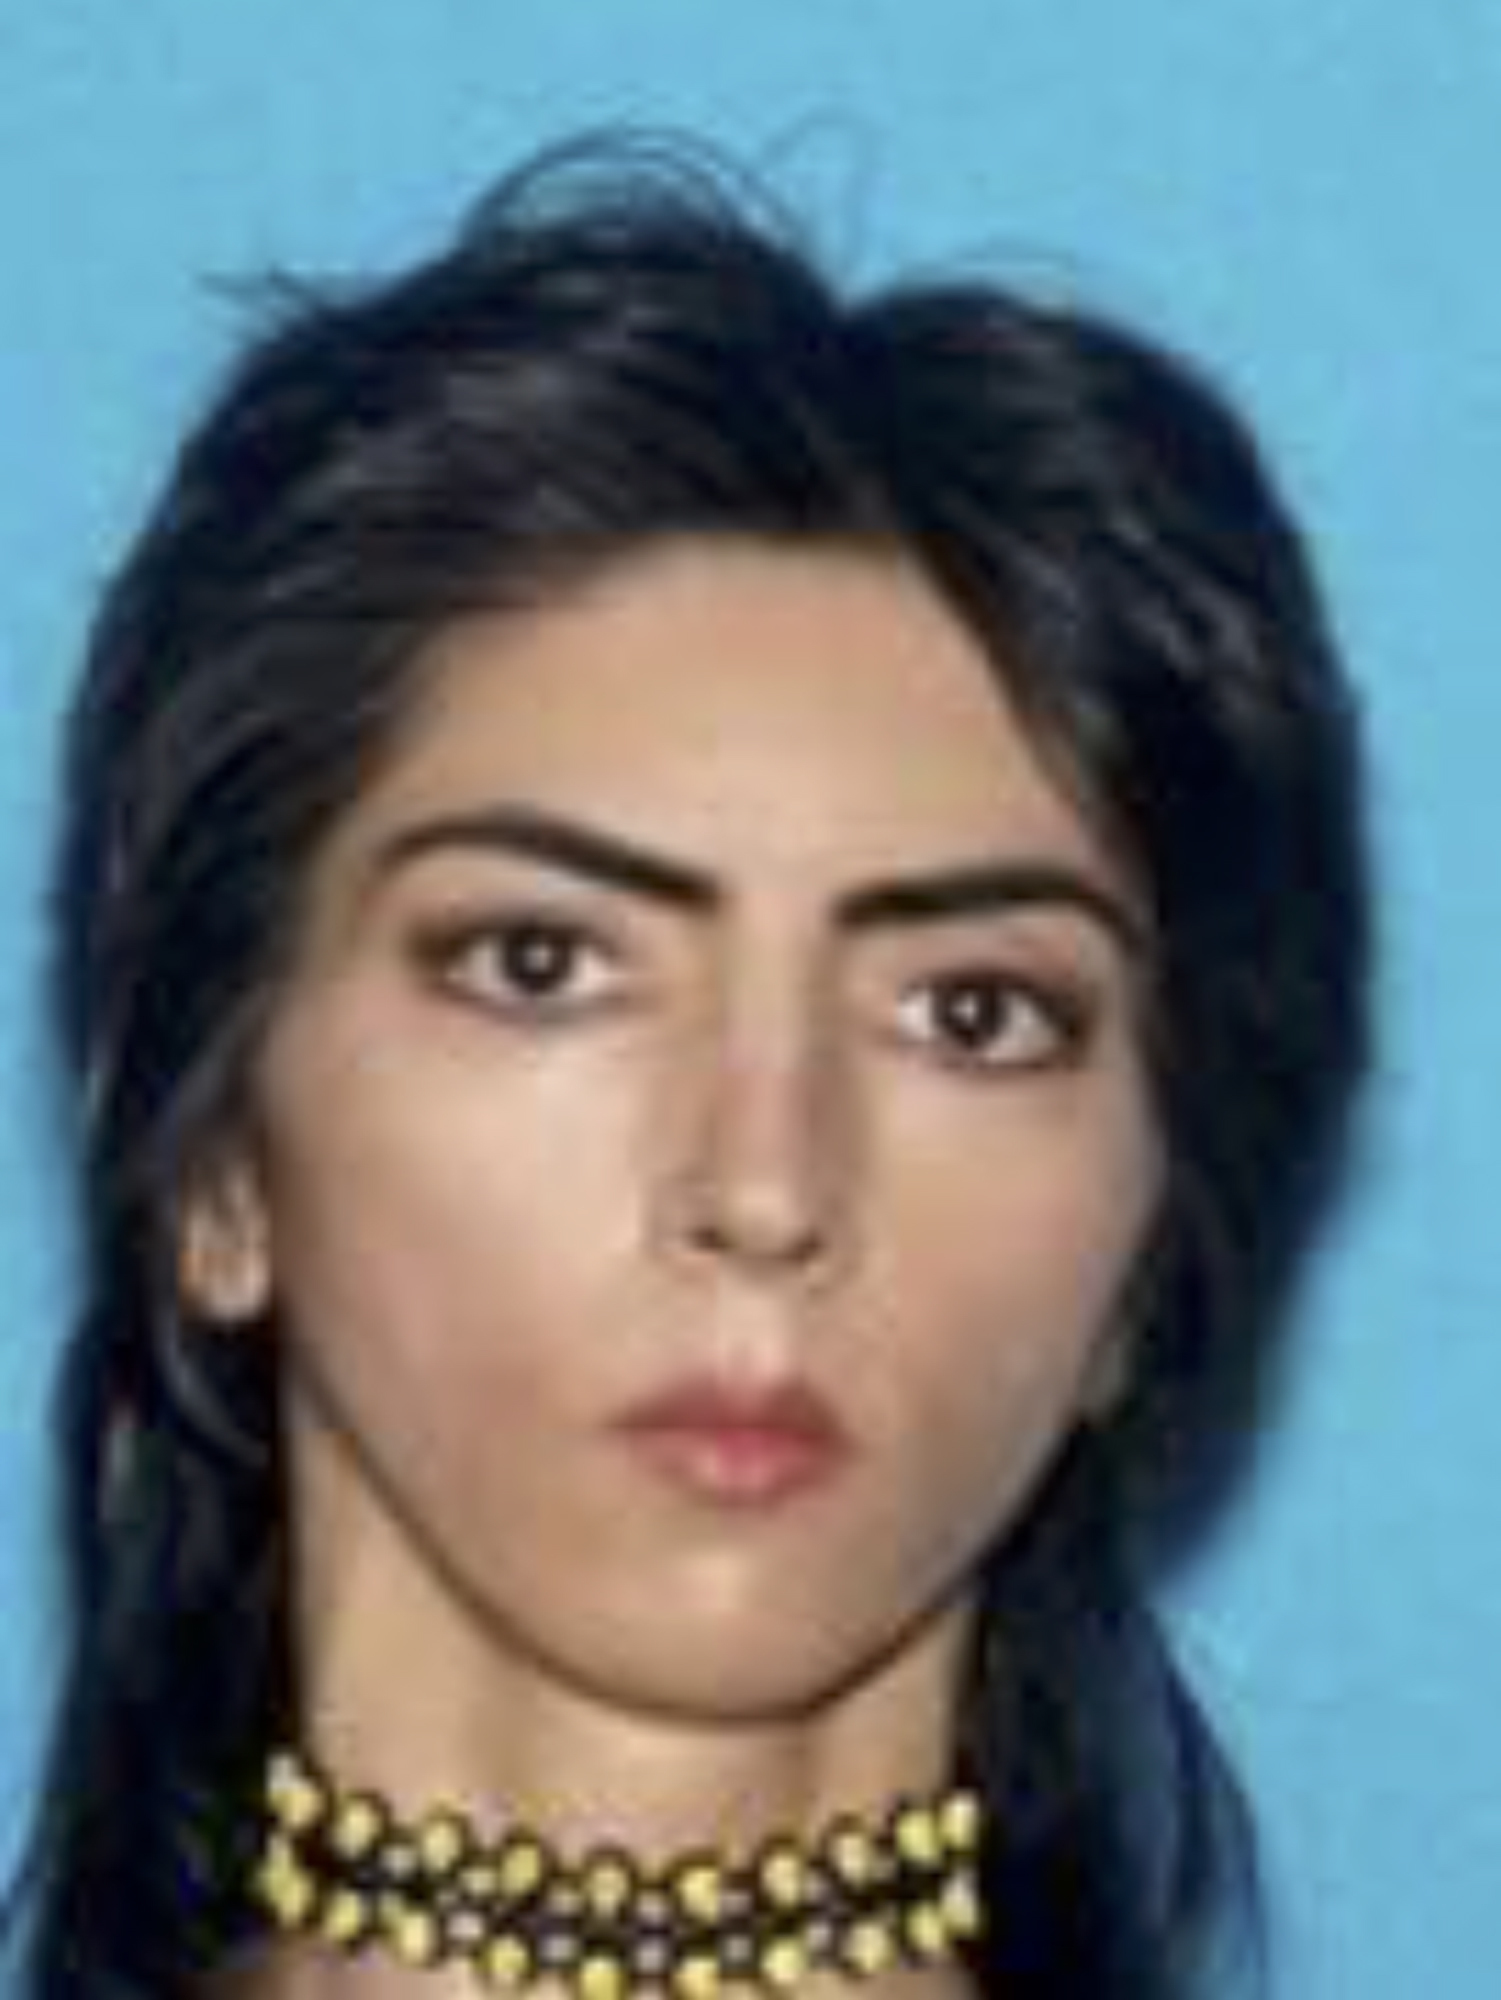 Nasim Aghdam, who opened fire at YouTube headquarters in San Buno, Calif. on April 3, 2018, seen in an undated photo provided by the San Bruno Police Department.